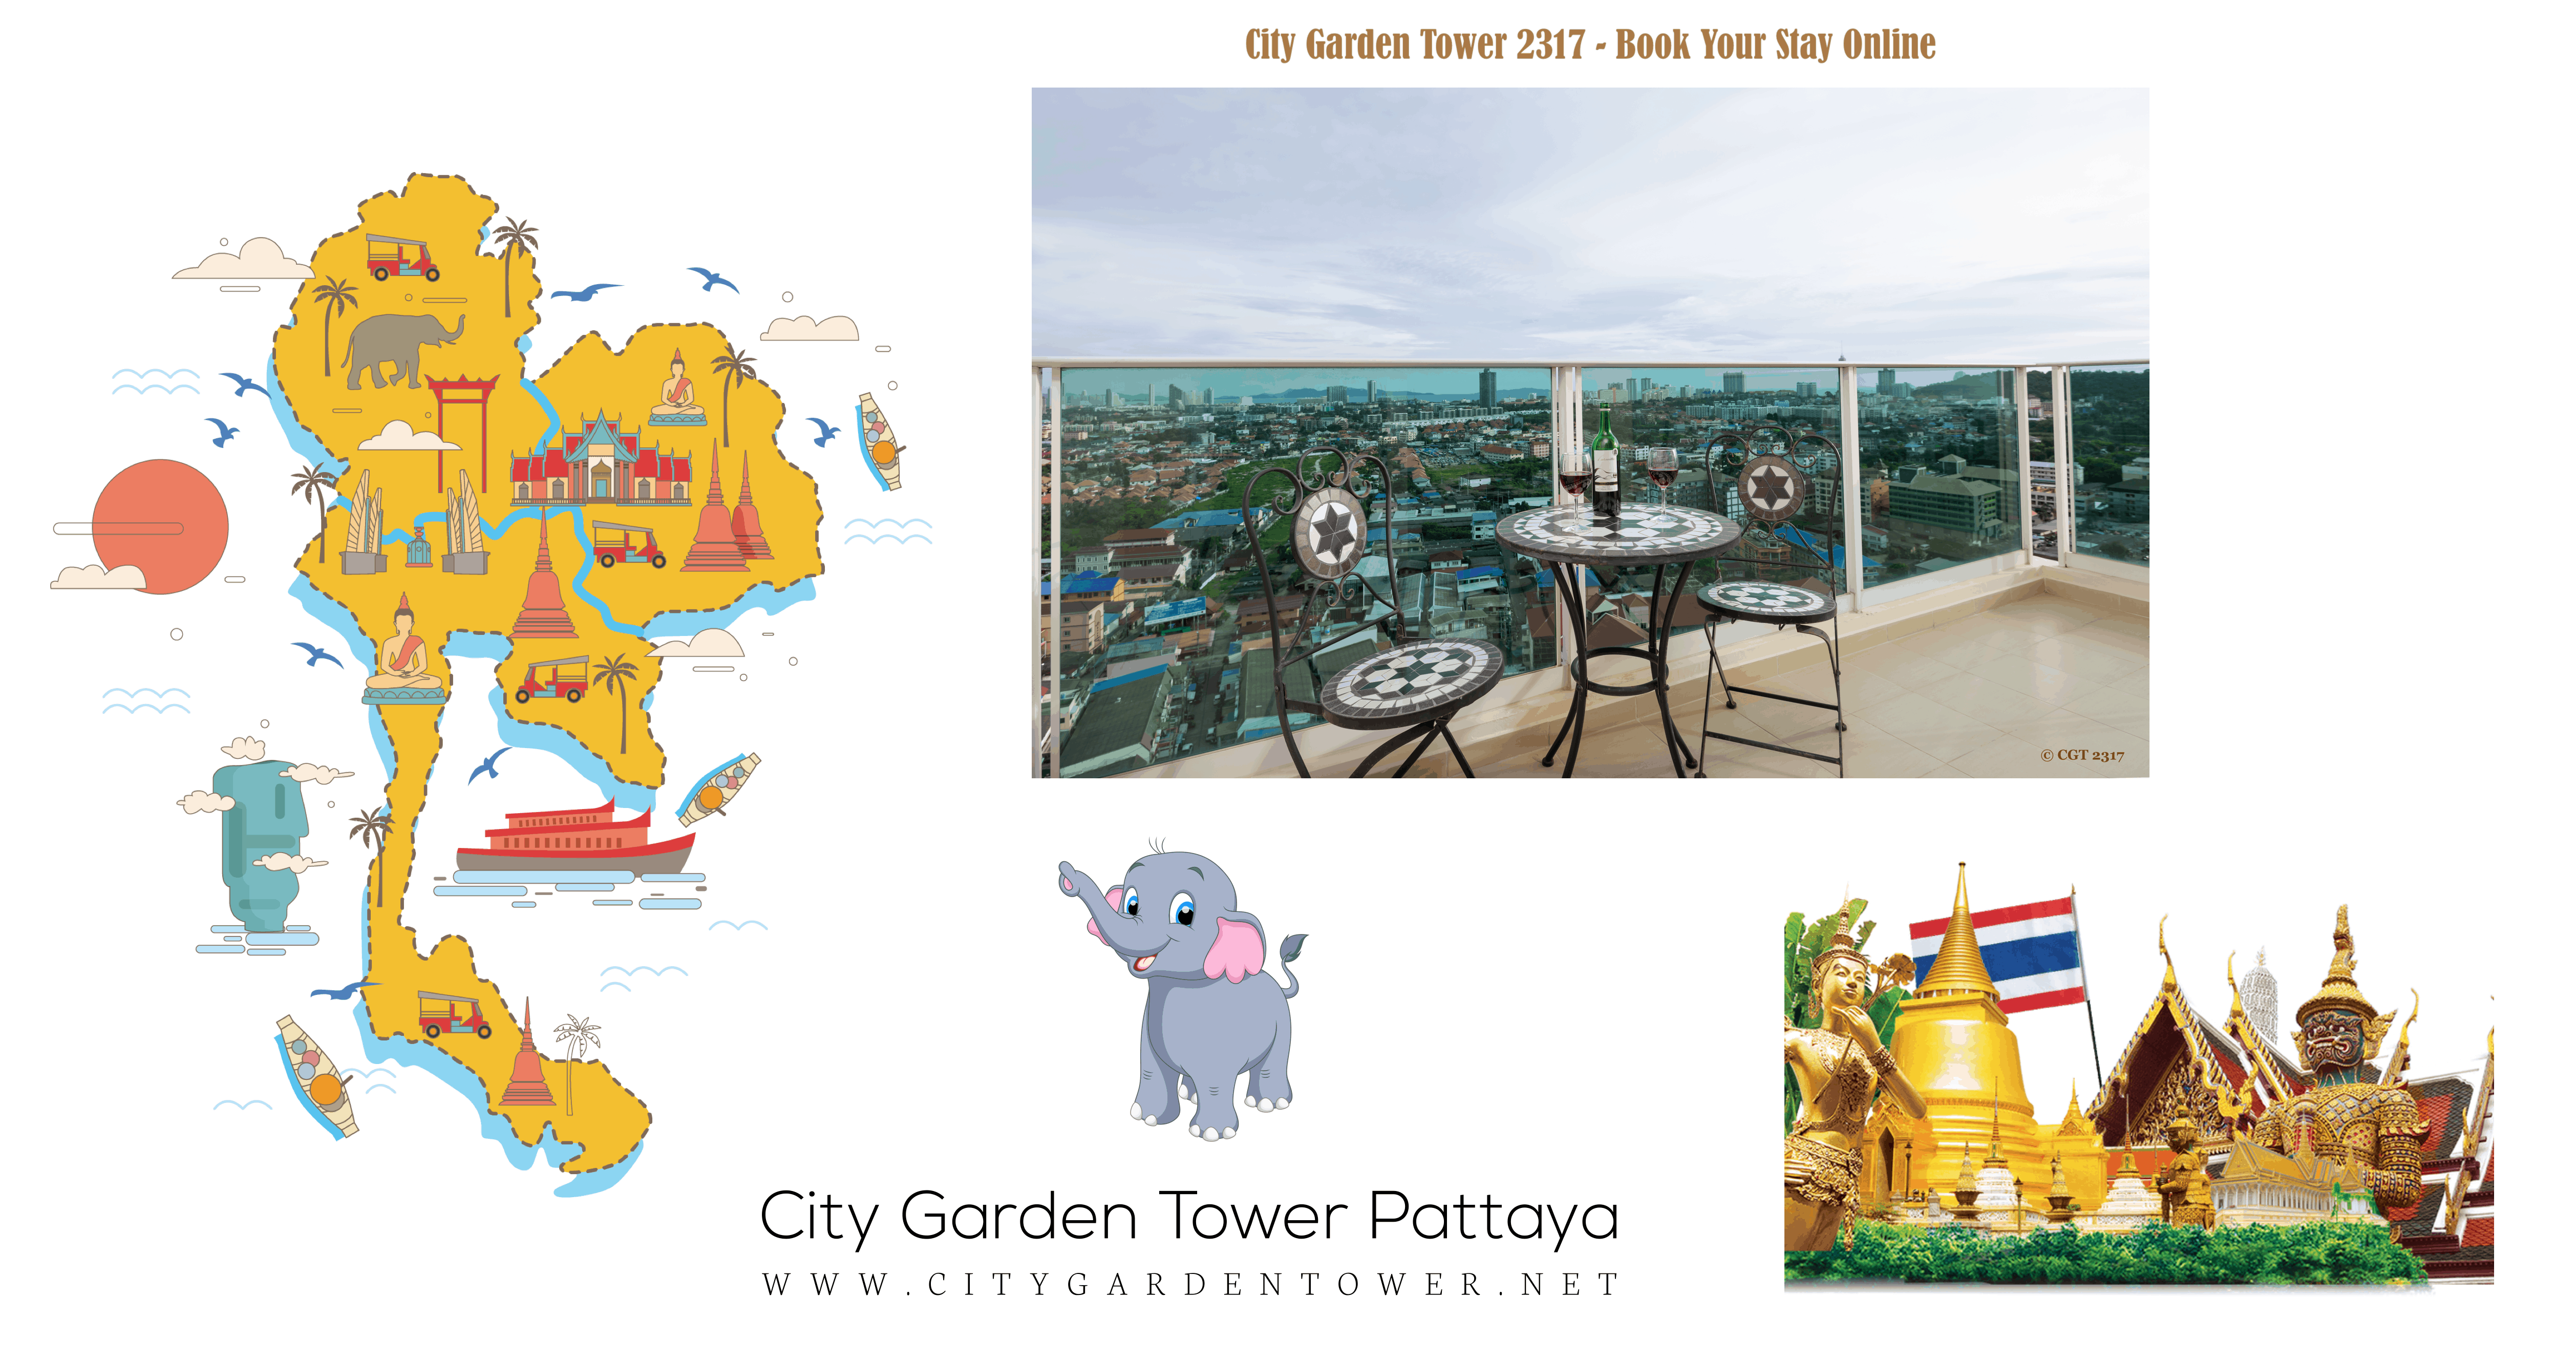 City Garden Tower Is Gaining Popularity Among Guests